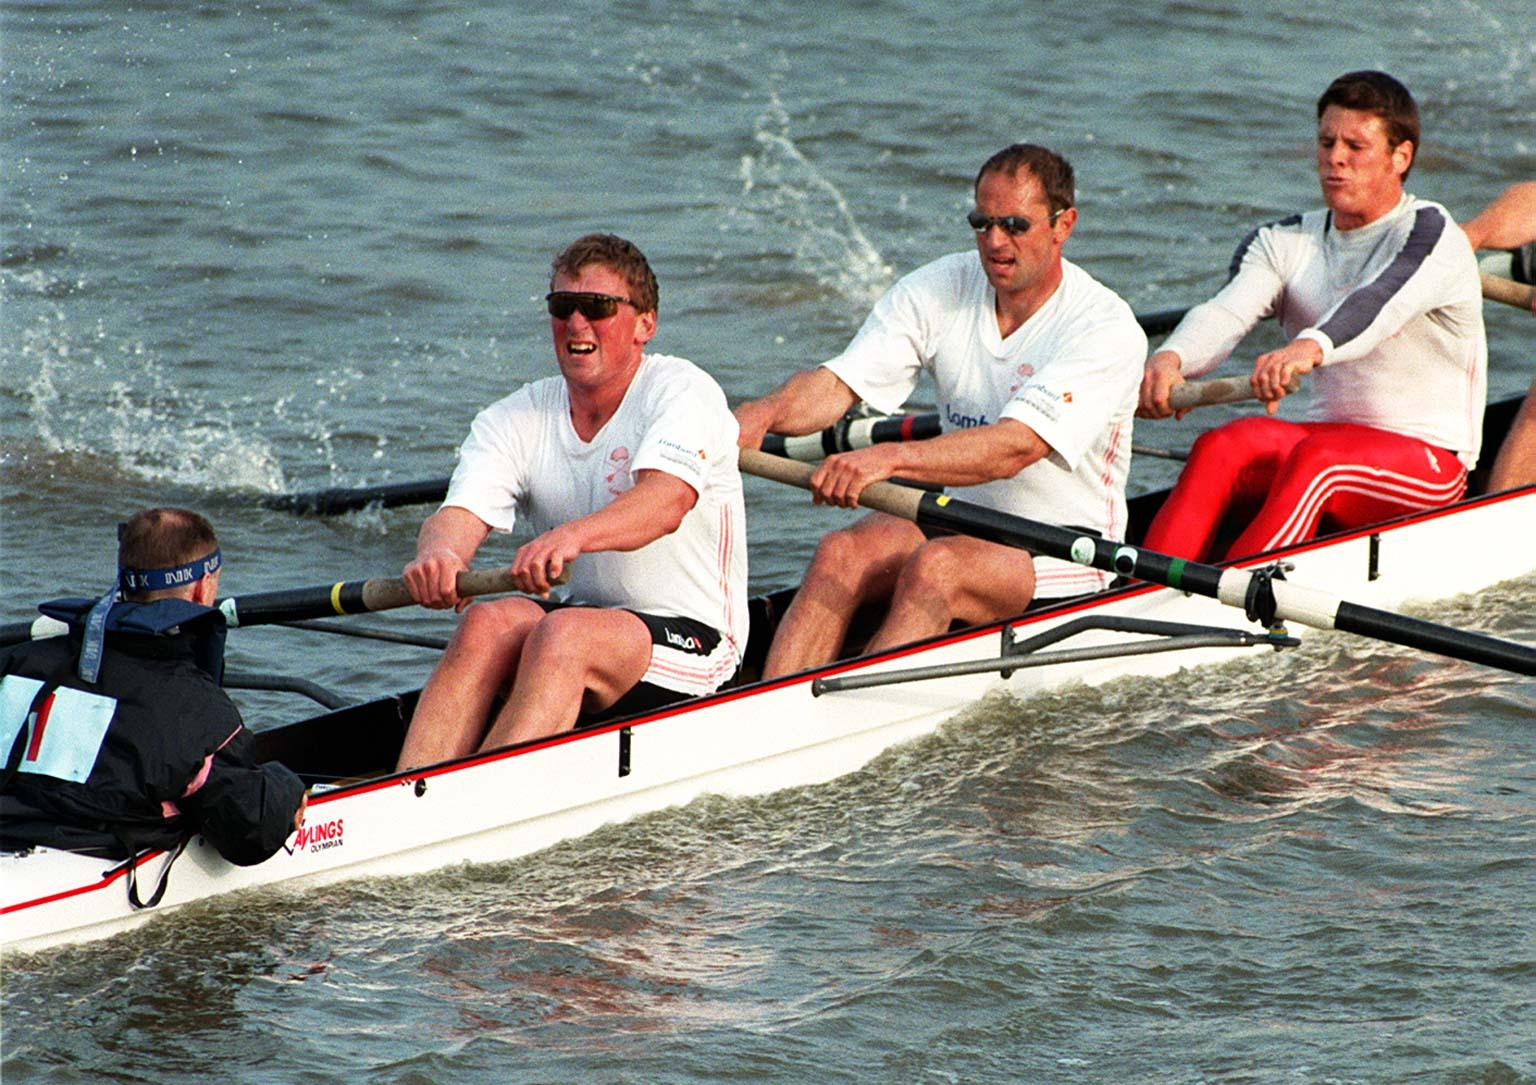 Olympic hero Steve Redgrave (centre) competing in 1997, the year he was diagnosed. He is with team mate, Matthew Pincent (second left), in the Leander crew for the Eights Head of the River Race,London. (Neil Munns/PA)